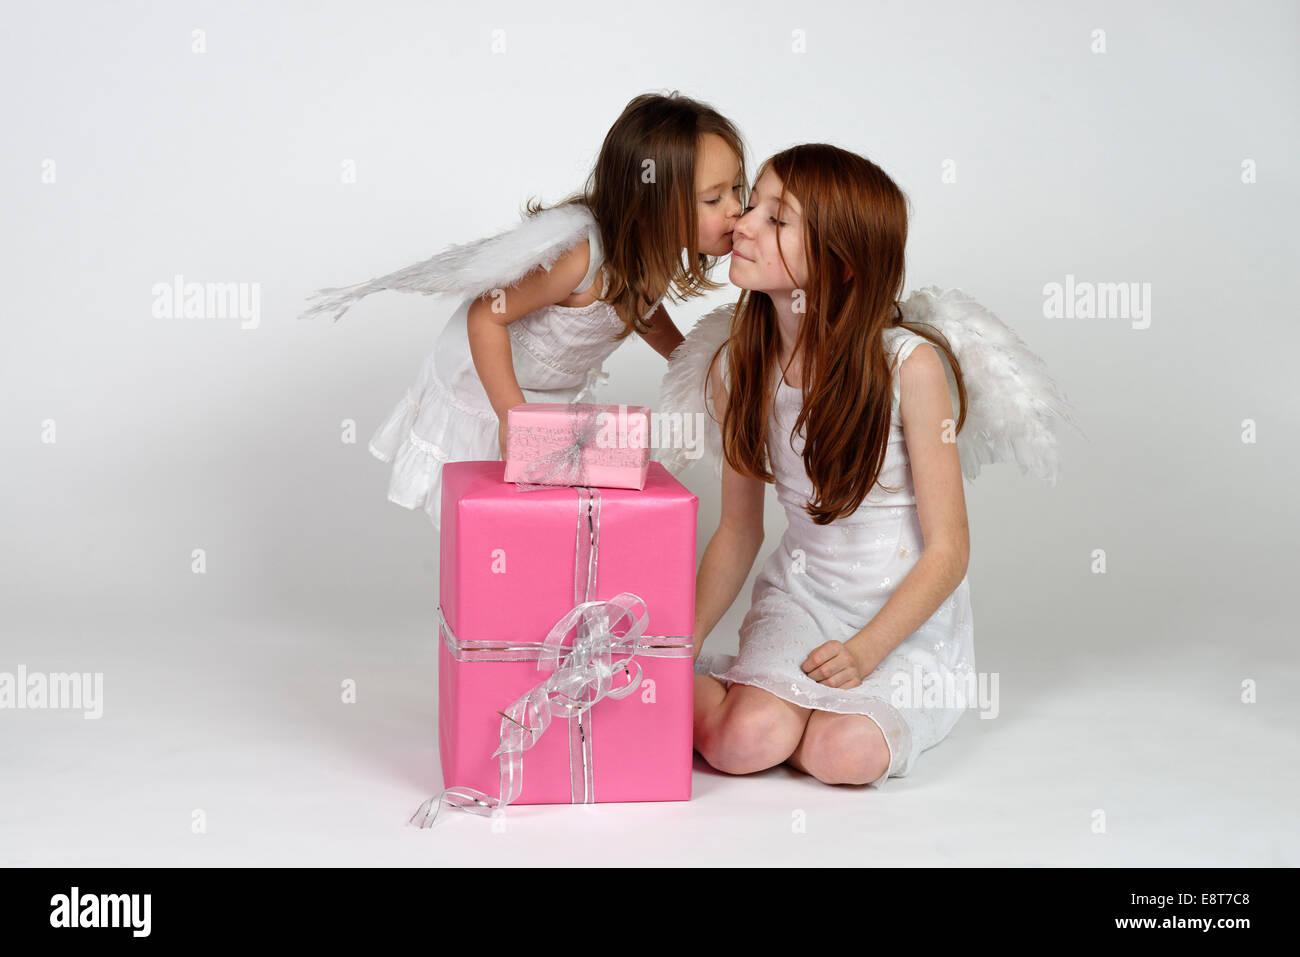 Angels Kiss Imágenes De Stock & Angels Kiss Fotos De Stock - Alamy